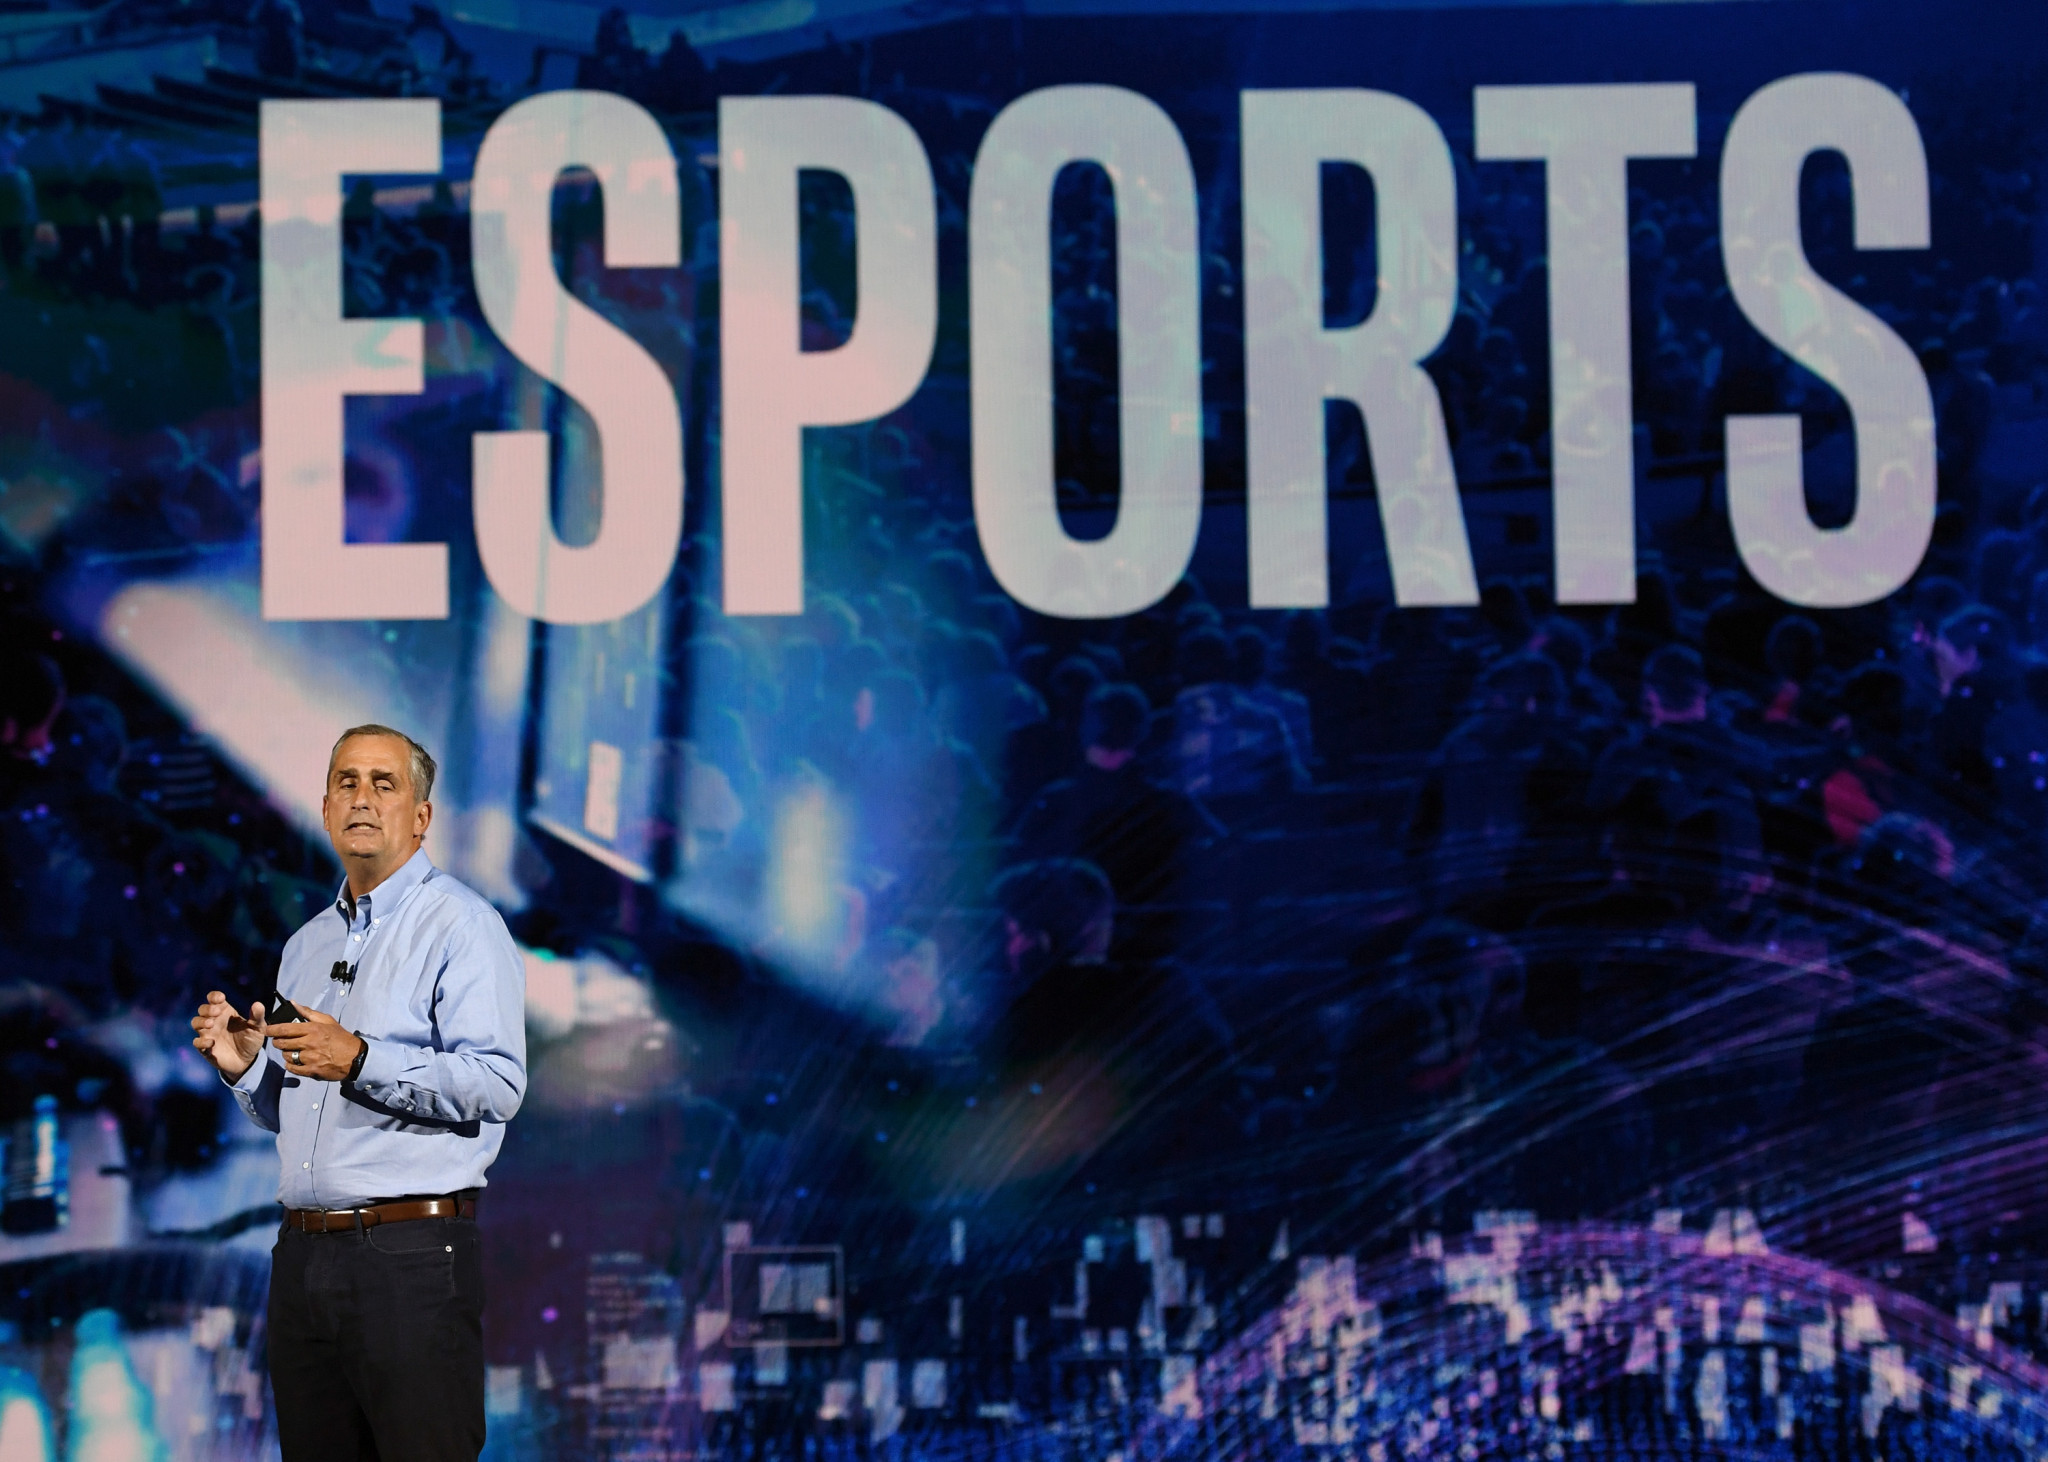 Germany recognises esports as an official sport